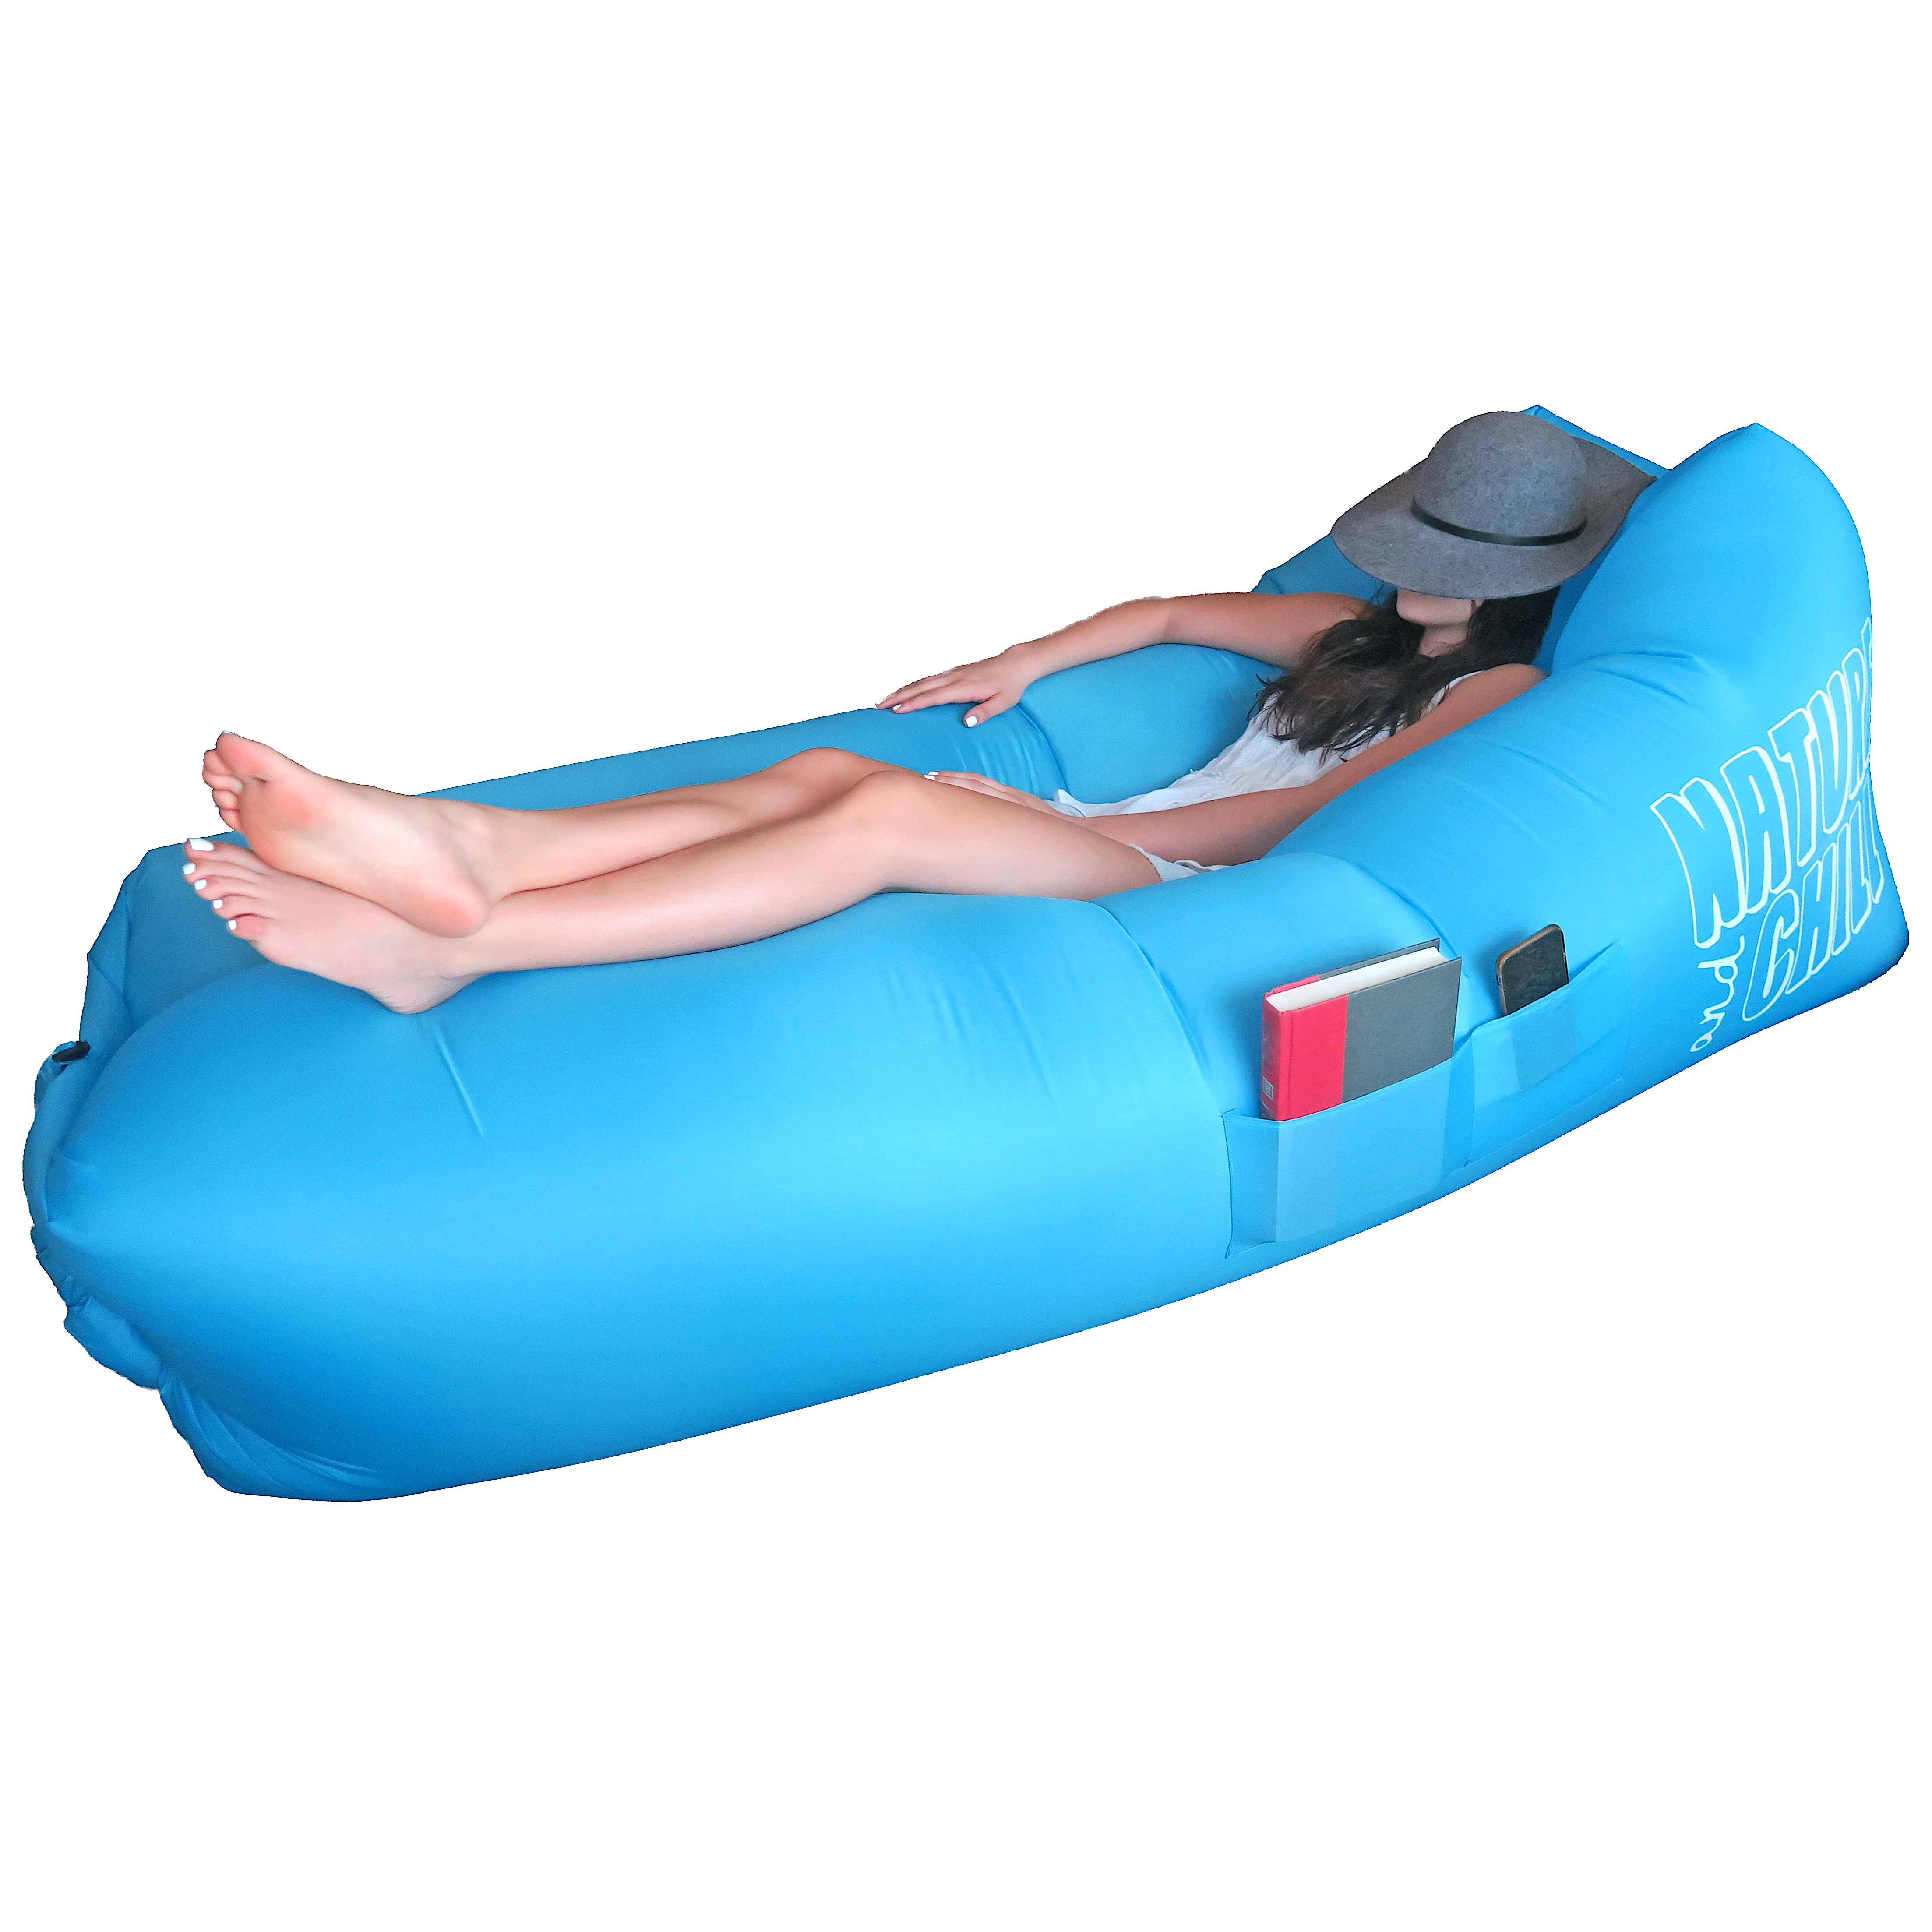 Swimming transparent inflatable. The best air lounger